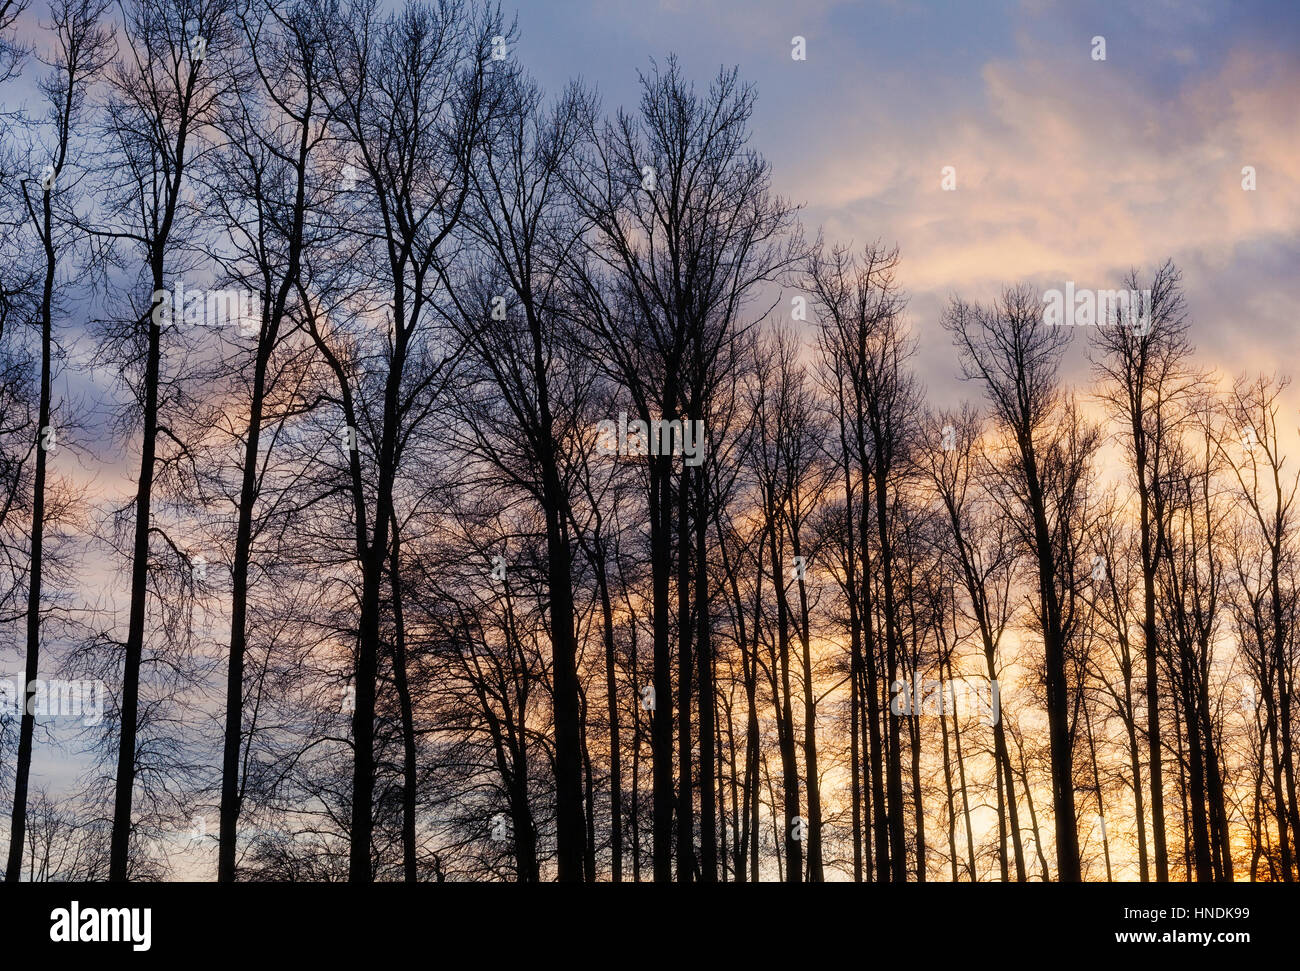 Trees, clouds and sunset. Mission, BC, Canada - Stock Image